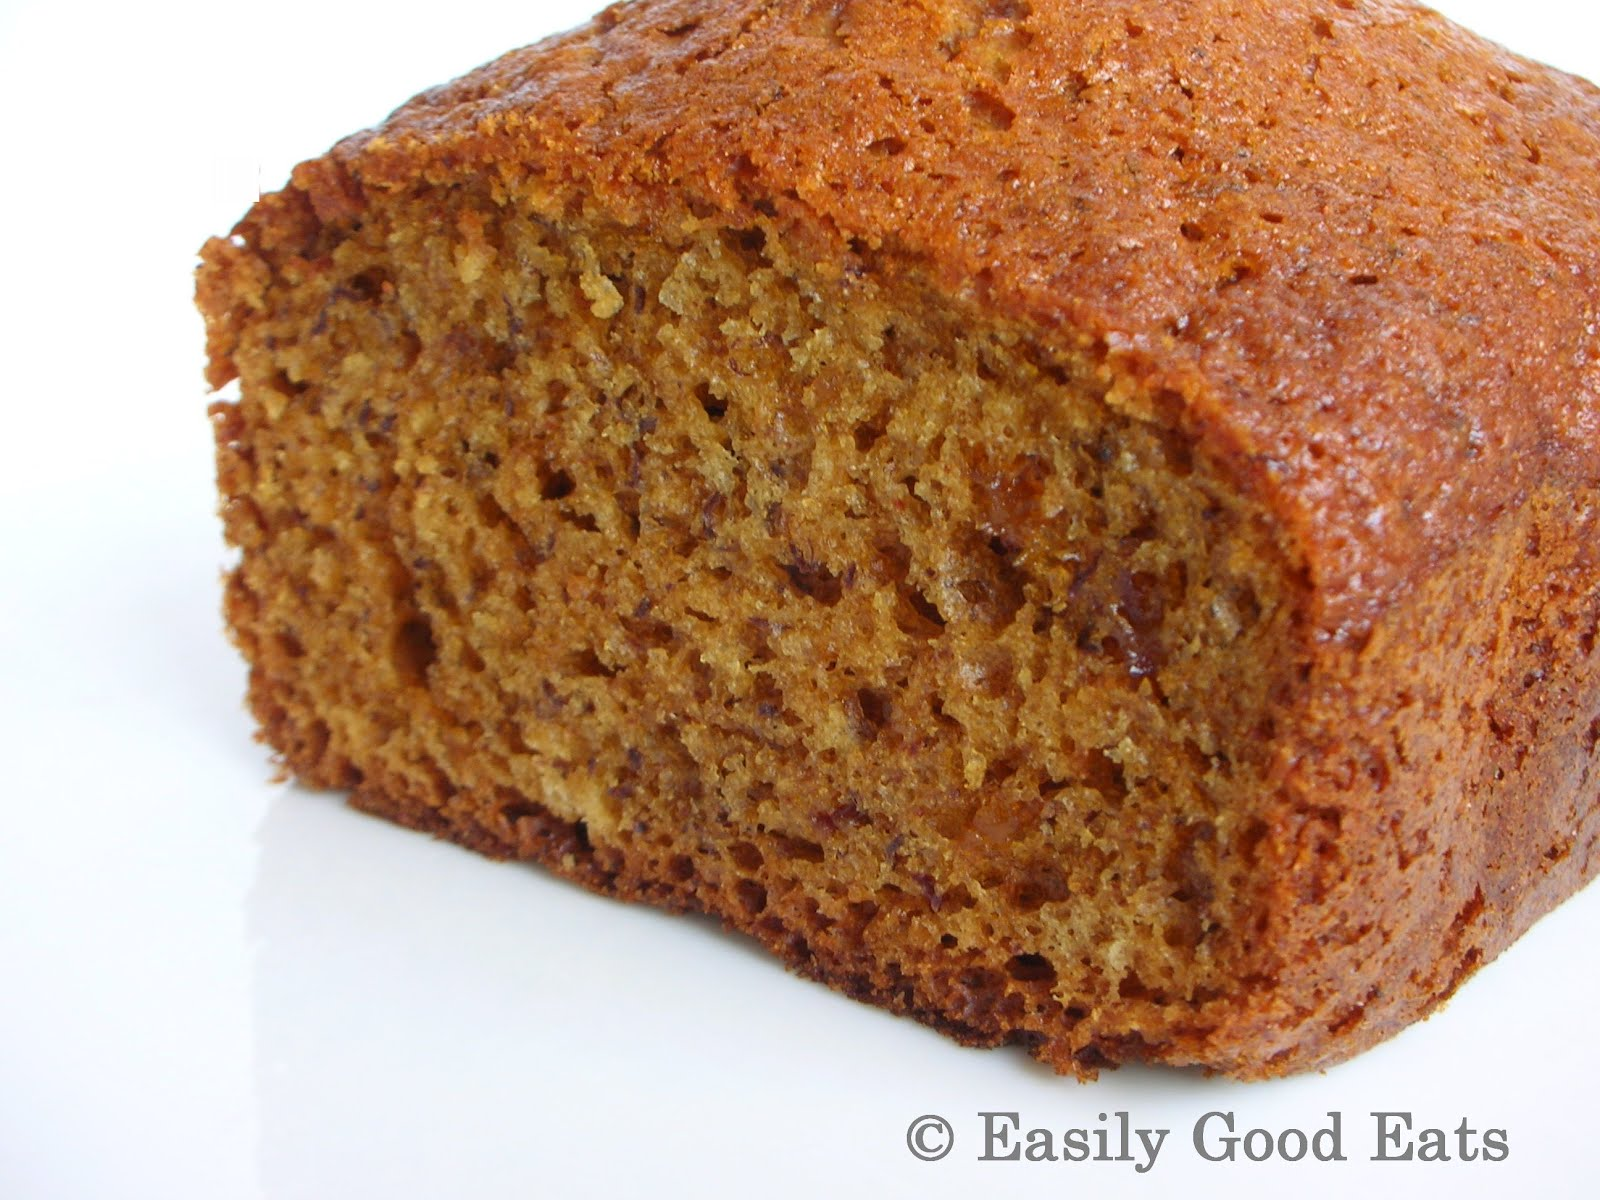 Banana Cake Recipe With Pudding Mix